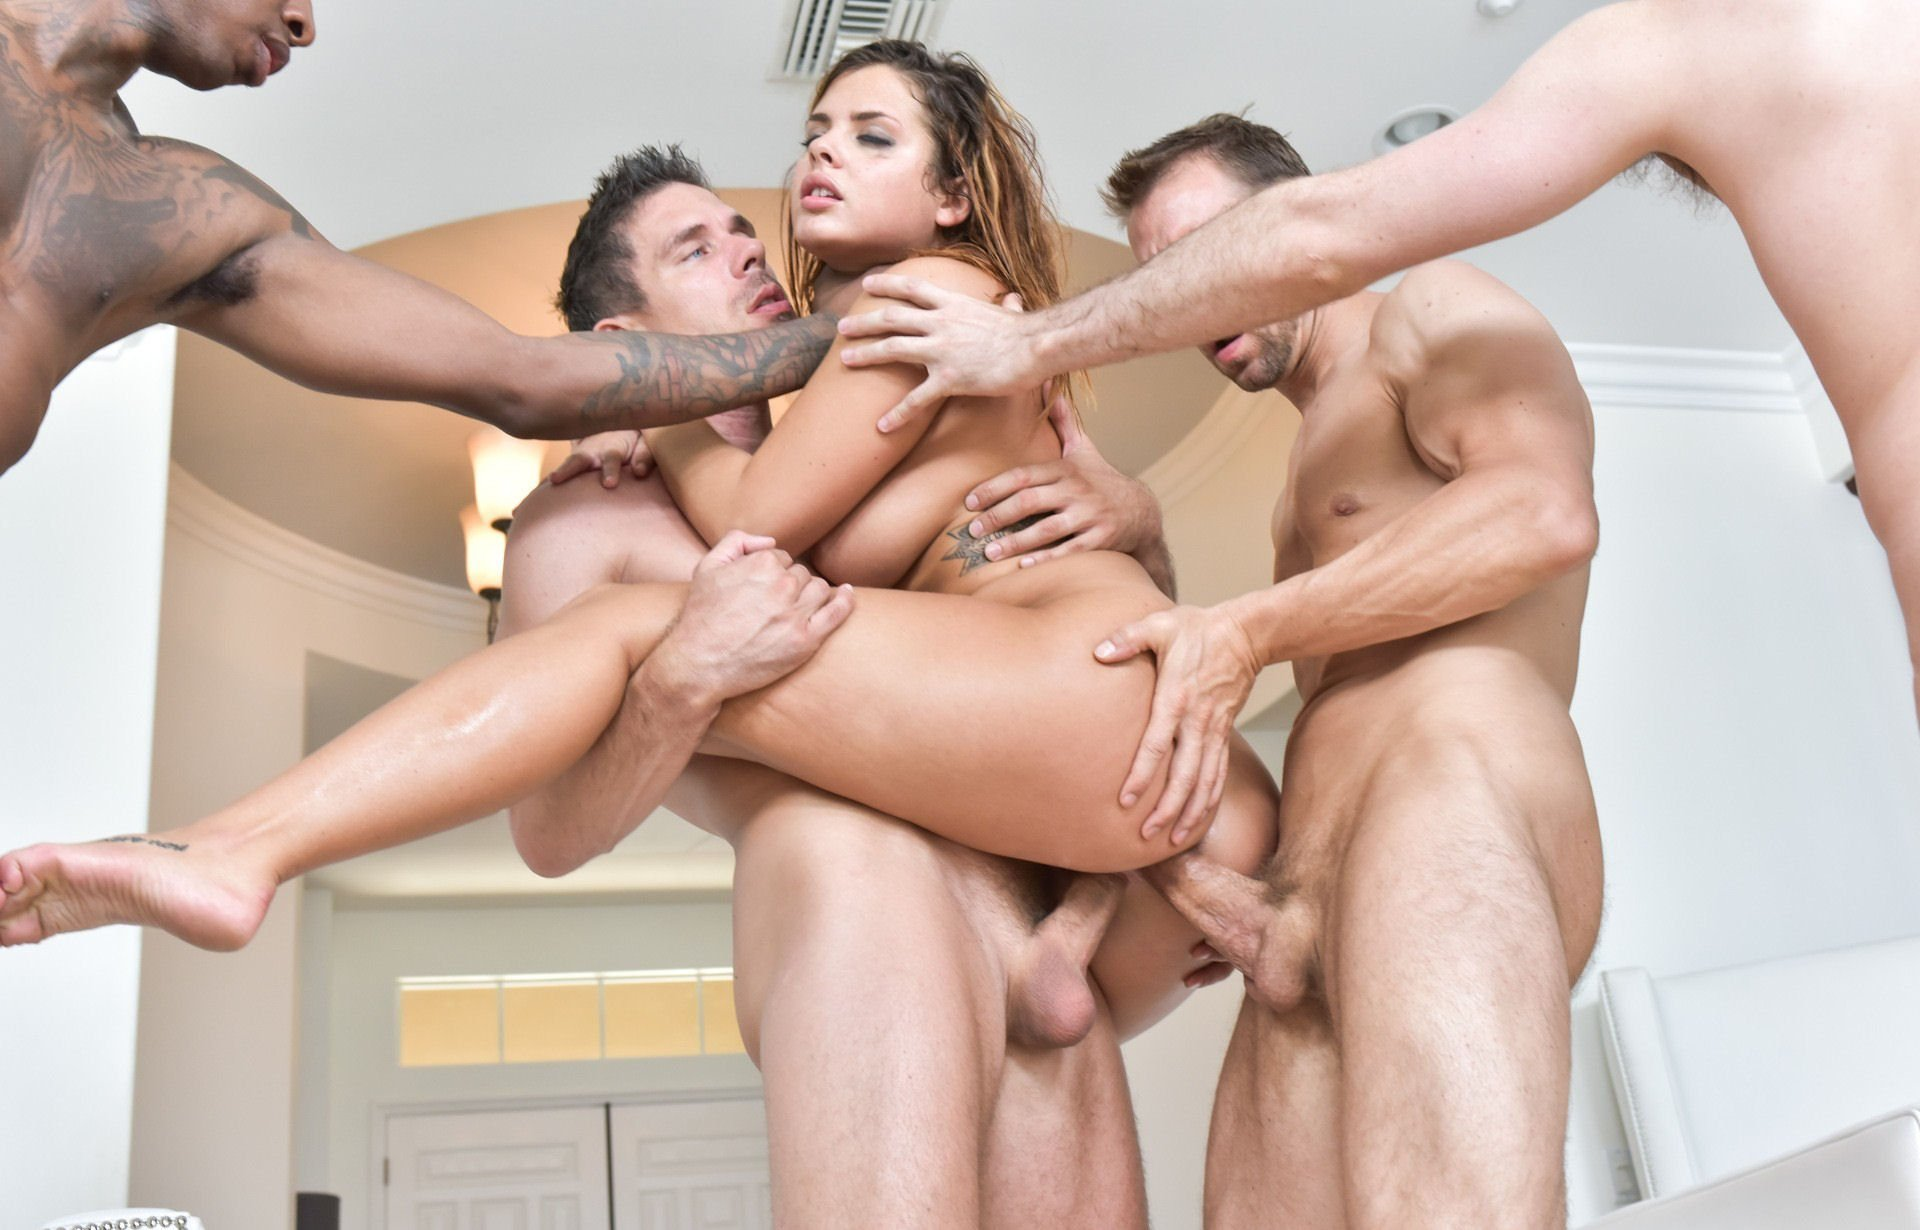 Anal pics on hot